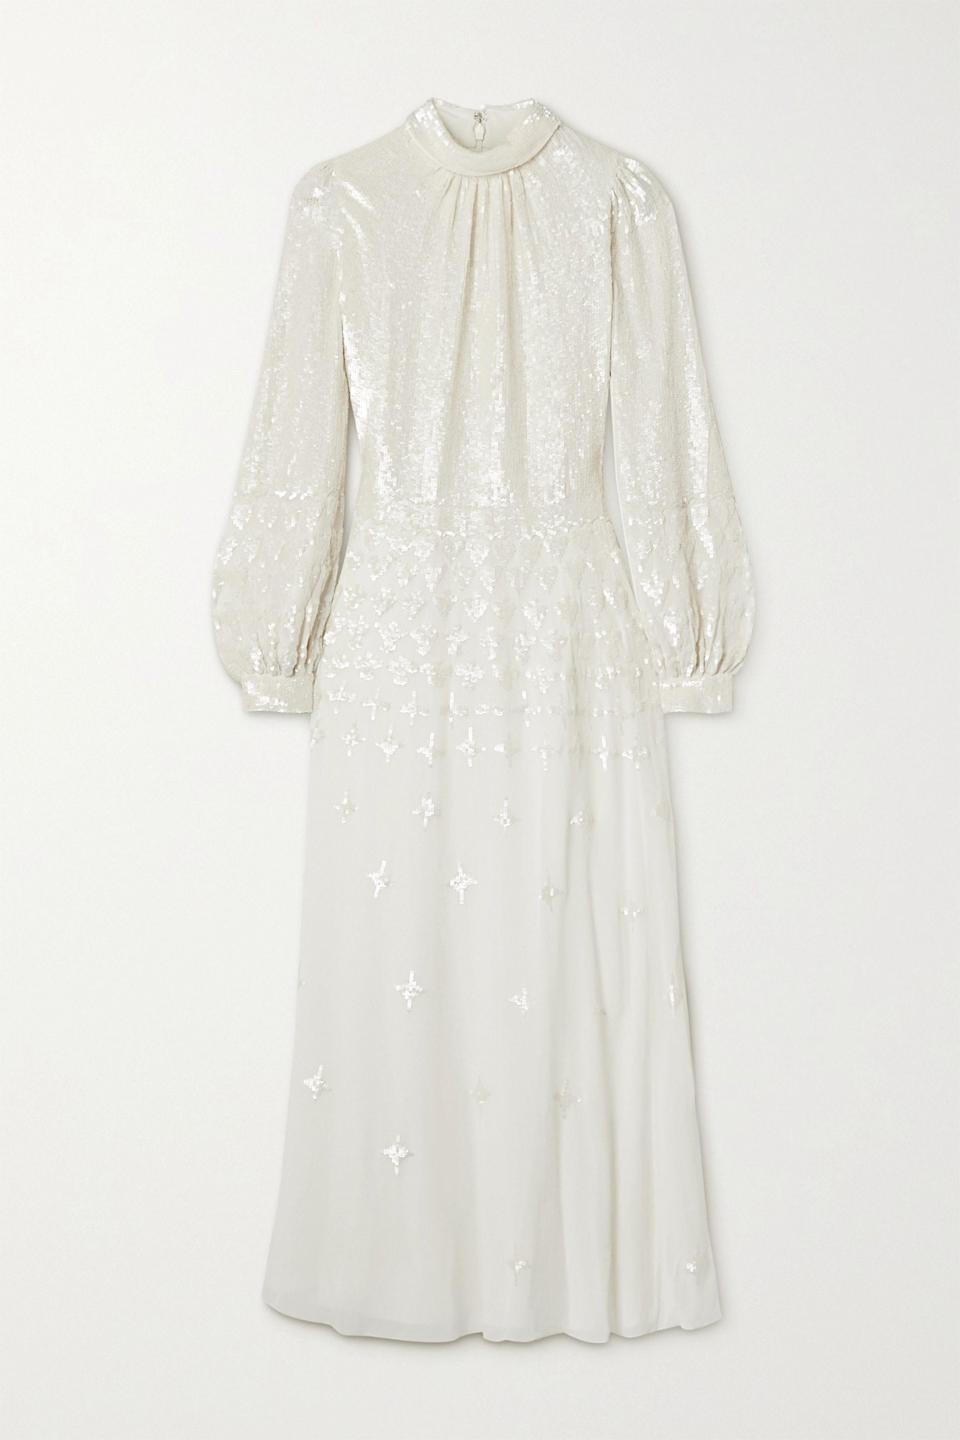 """<p><strong>Temperley London</strong></p><p>net-a-porter.com</p><p><strong>$2695.00</strong></p><p><a href=""""https://go.redirectingat.com?id=74968X1596630&url=https%3A%2F%2Fwww.net-a-porter.com%2Fen-us%2Fshop%2Fproduct%2Ftemperley-london%2Fmirella-sequin-embellished-crepe-de-chine-midi-dress%2F1231733&sref=https%3A%2F%2Fwww.harpersbazaar.com%2Fwedding%2Fbridal-fashion%2Fg7503%2Foff-the-rack-wedding-dresses%2F"""" rel=""""nofollow noopener"""" target=""""_blank"""" data-ylk=""""slk:SHOP NOW"""" class=""""link rapid-noclick-resp"""">SHOP NOW</a></p><p>All-over sequins aren't always for the after party; done in a draped mock neck and blouson sleeves, this style feels effortlessly elegant. Pair with equally glam accessories, or pair with a slide to dress this look down.</p>"""